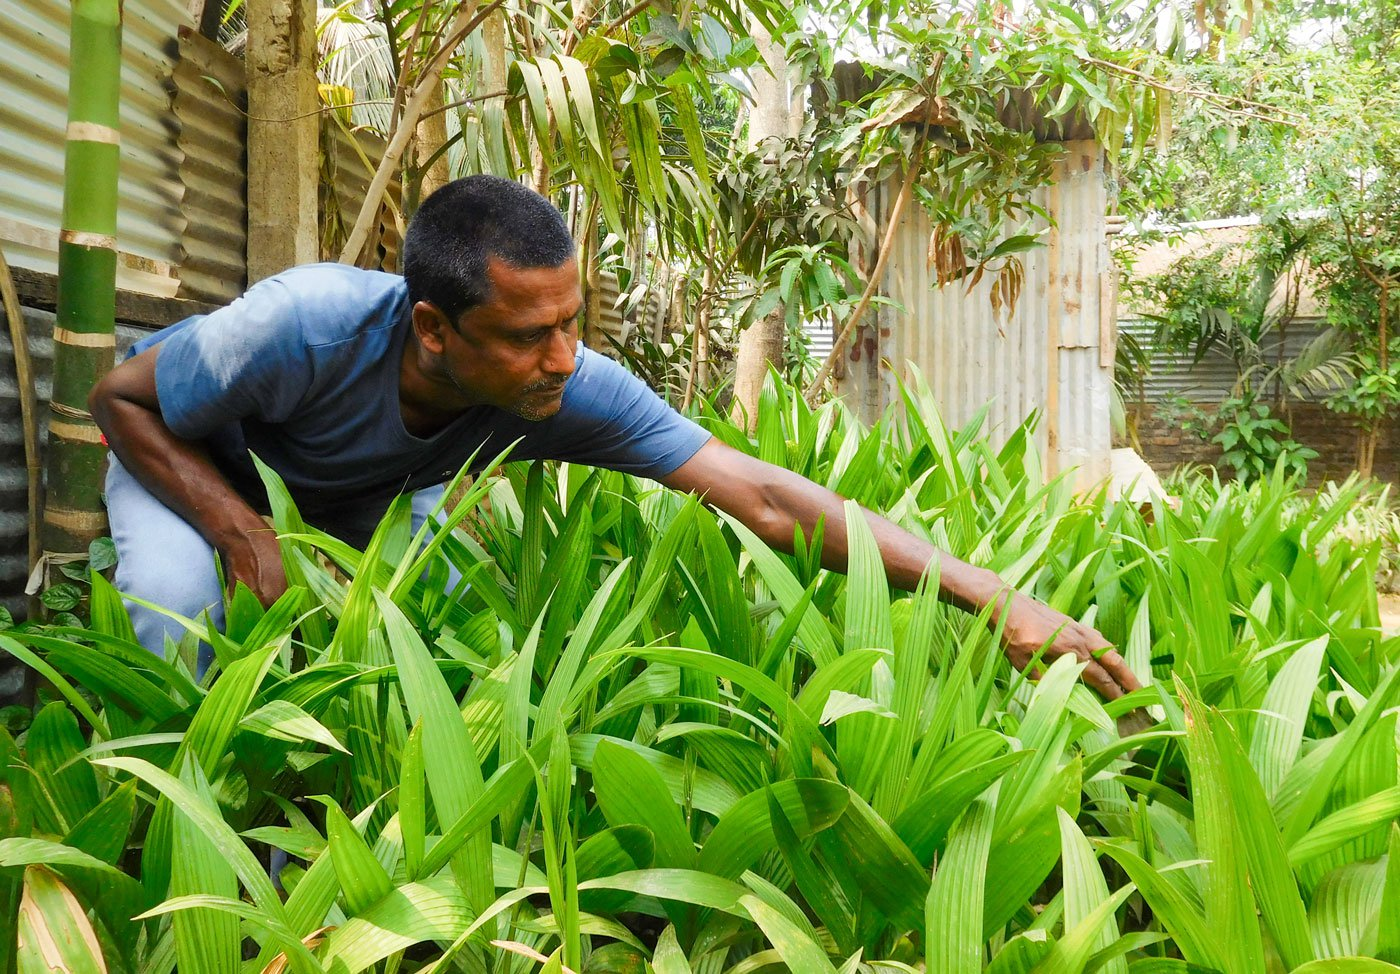 In his backyard, tending to beetle nut seedlings. Seeds are checked too at the border gate, and seeds of jute and sugarcane are not allowed – anything that grows more than three-feet high is not allowed to grow so that visibility is not obstructed